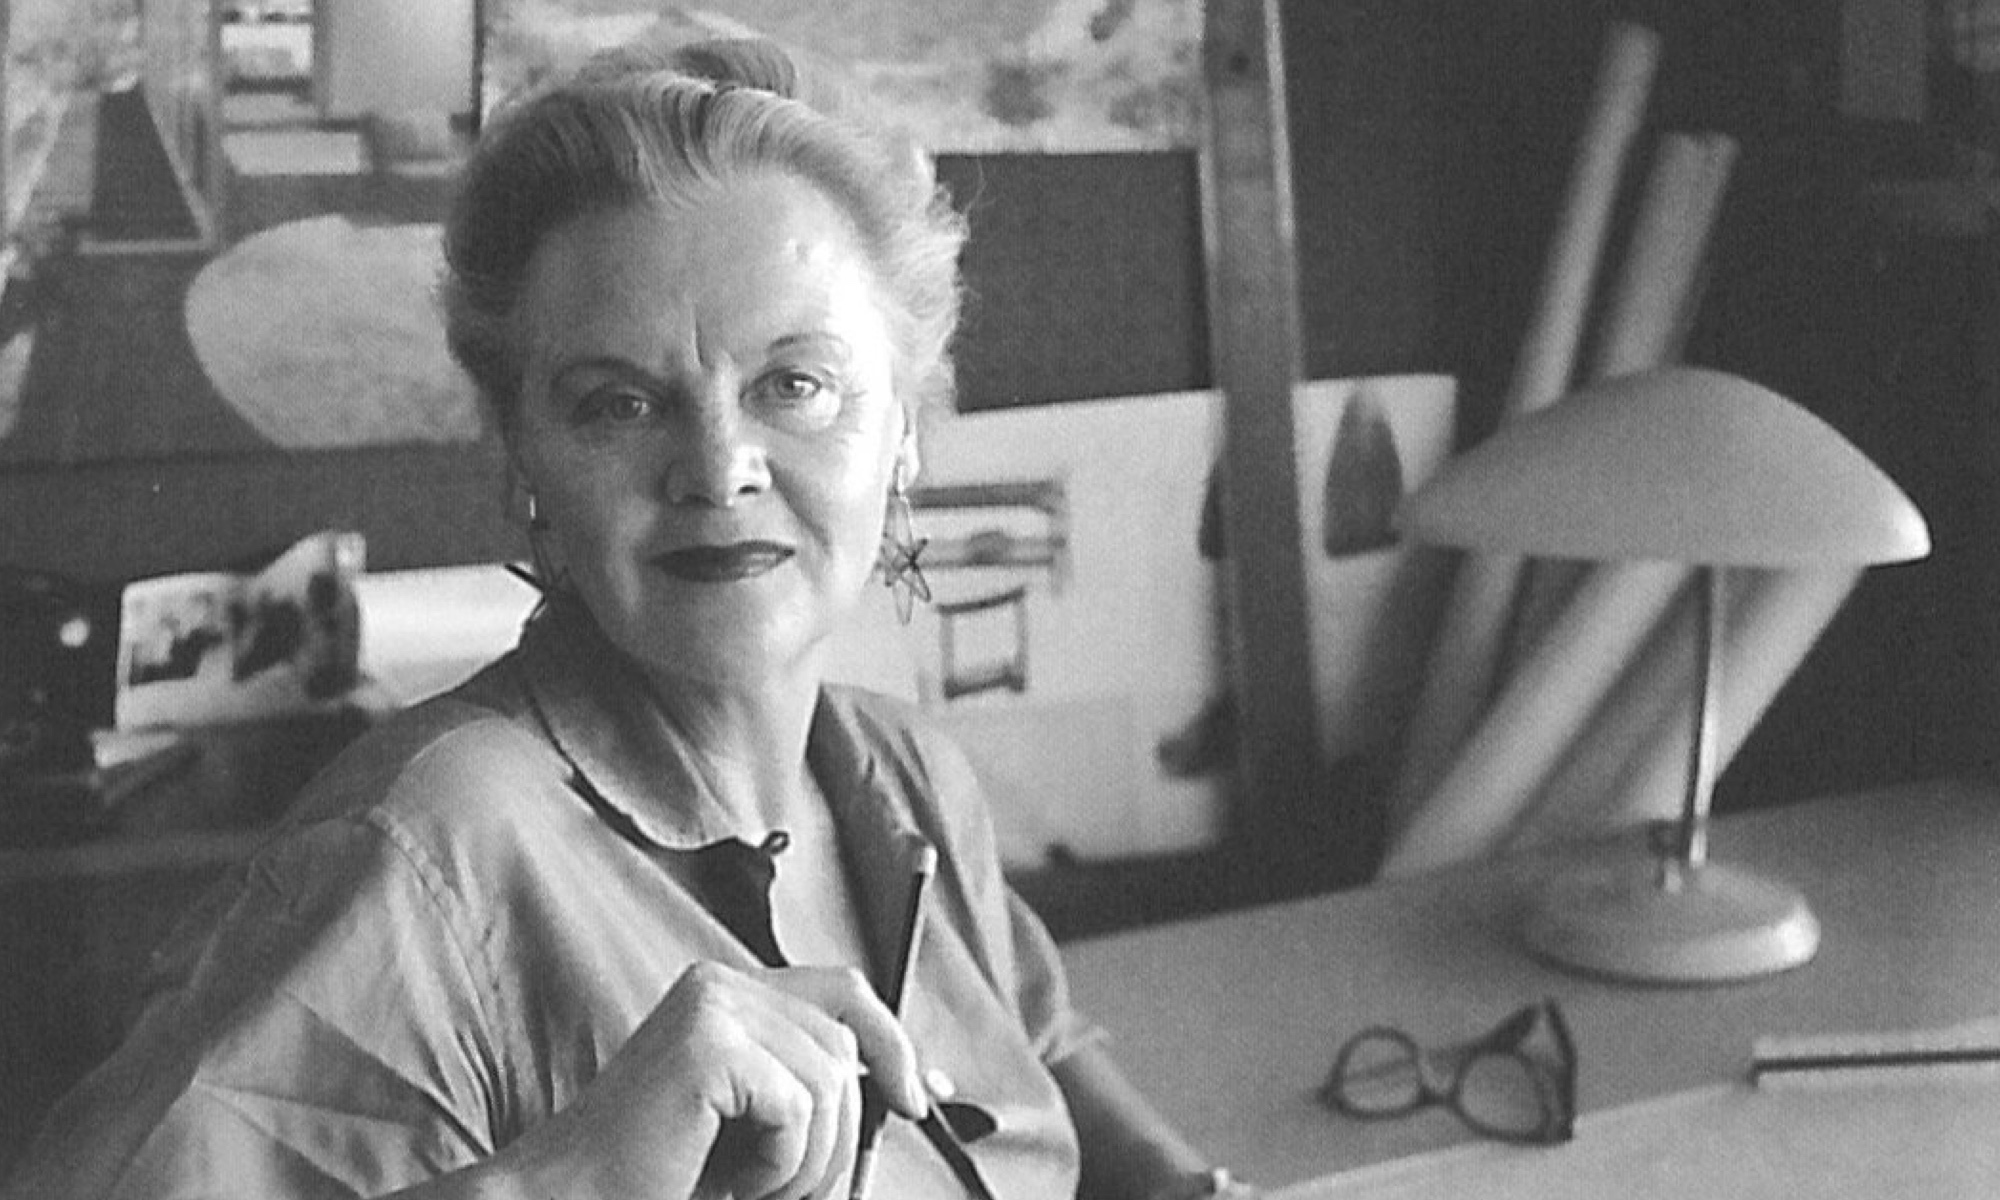 Greta Magnusson Grossman in her studio, at home in California. A 1959 portrait by Julius Schulman.